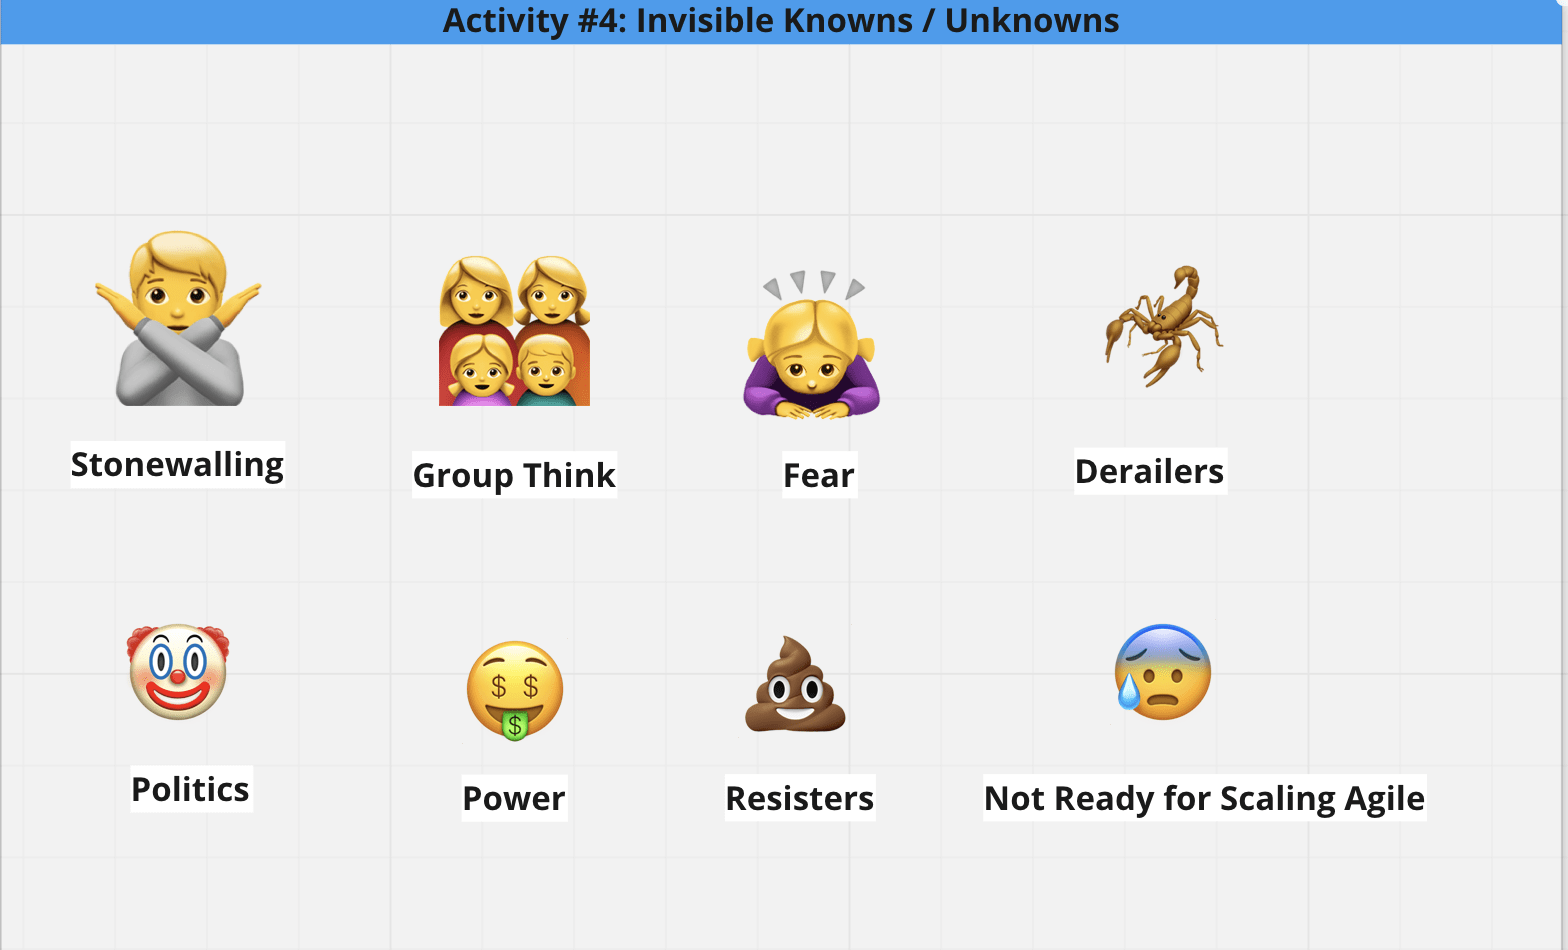 Invisible Knowns / Unknowns